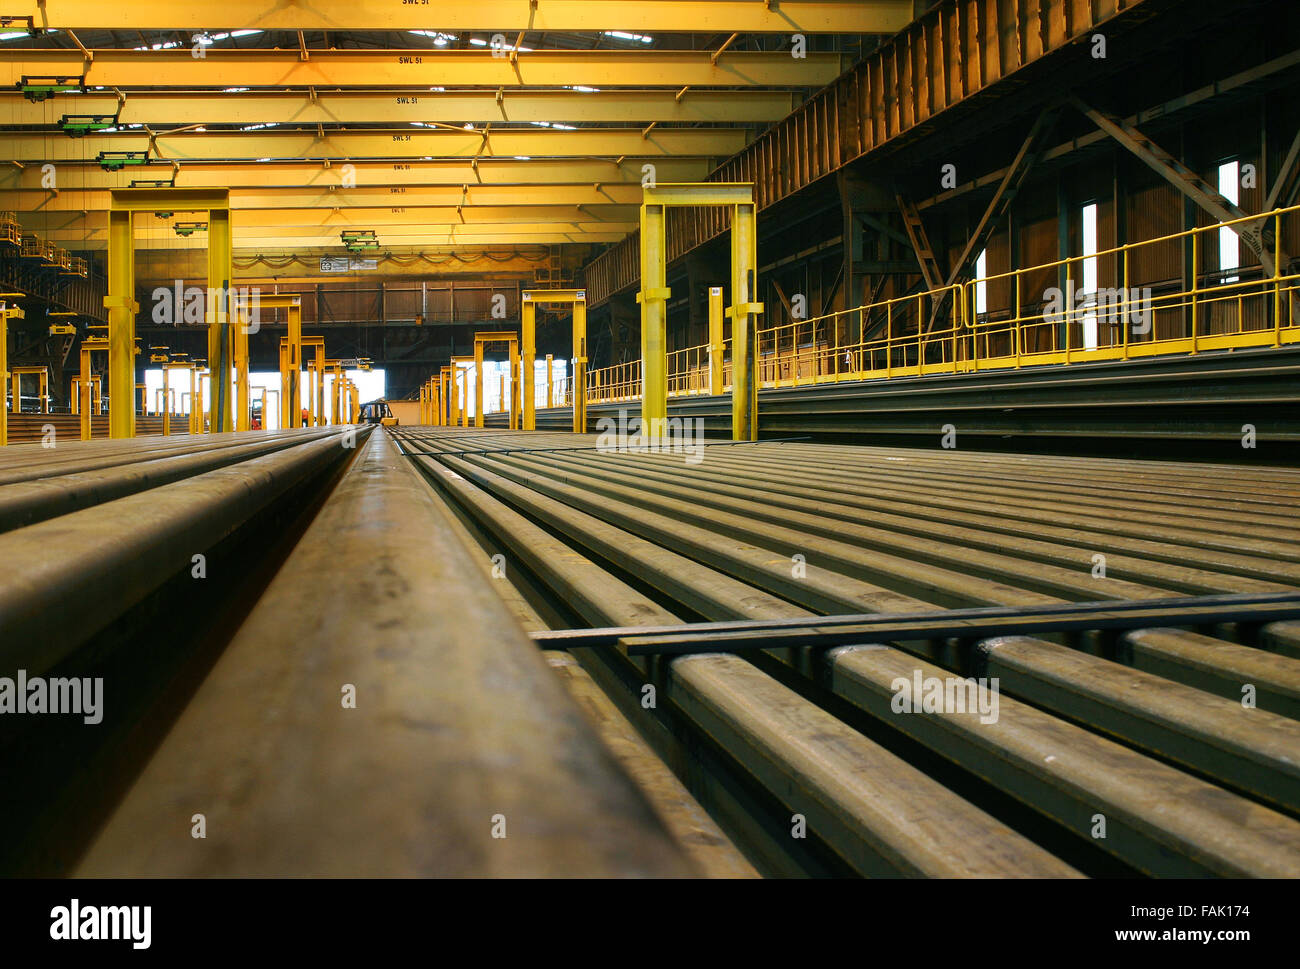 Long lengths of rolled steel railway track. - Stock Image